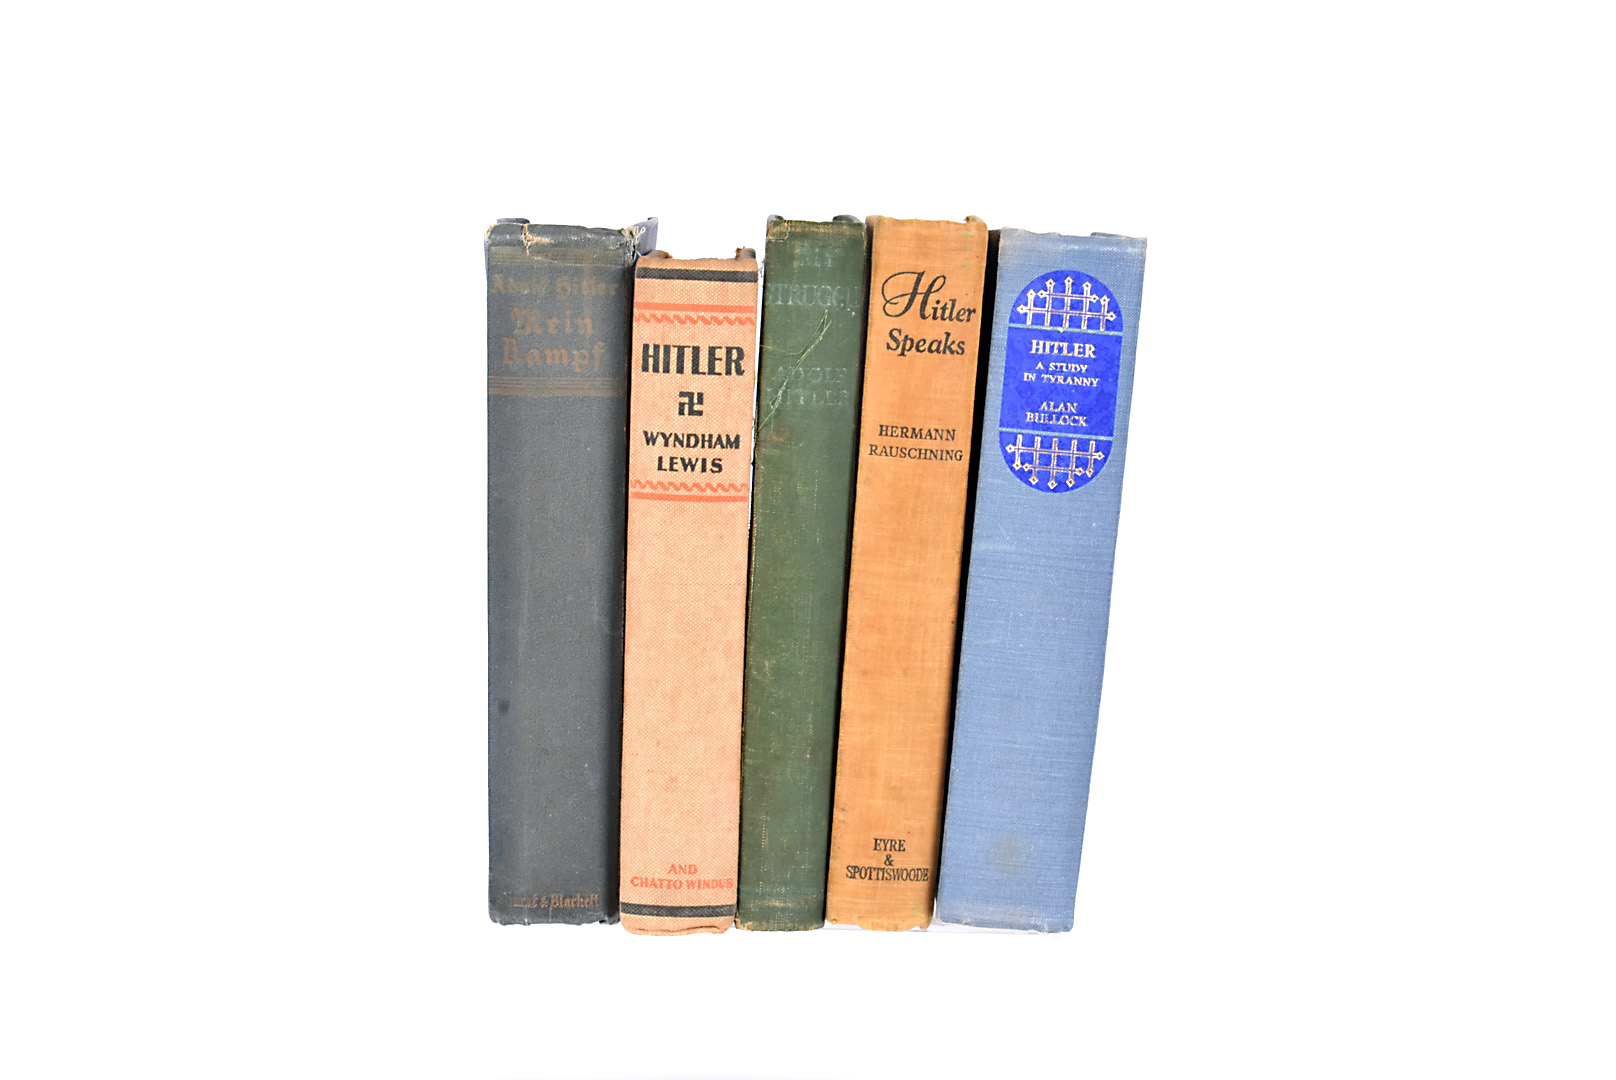 A group of five Hitler related books, to include Mein Kampf by Hurst and Blackett 1939, Hitler by